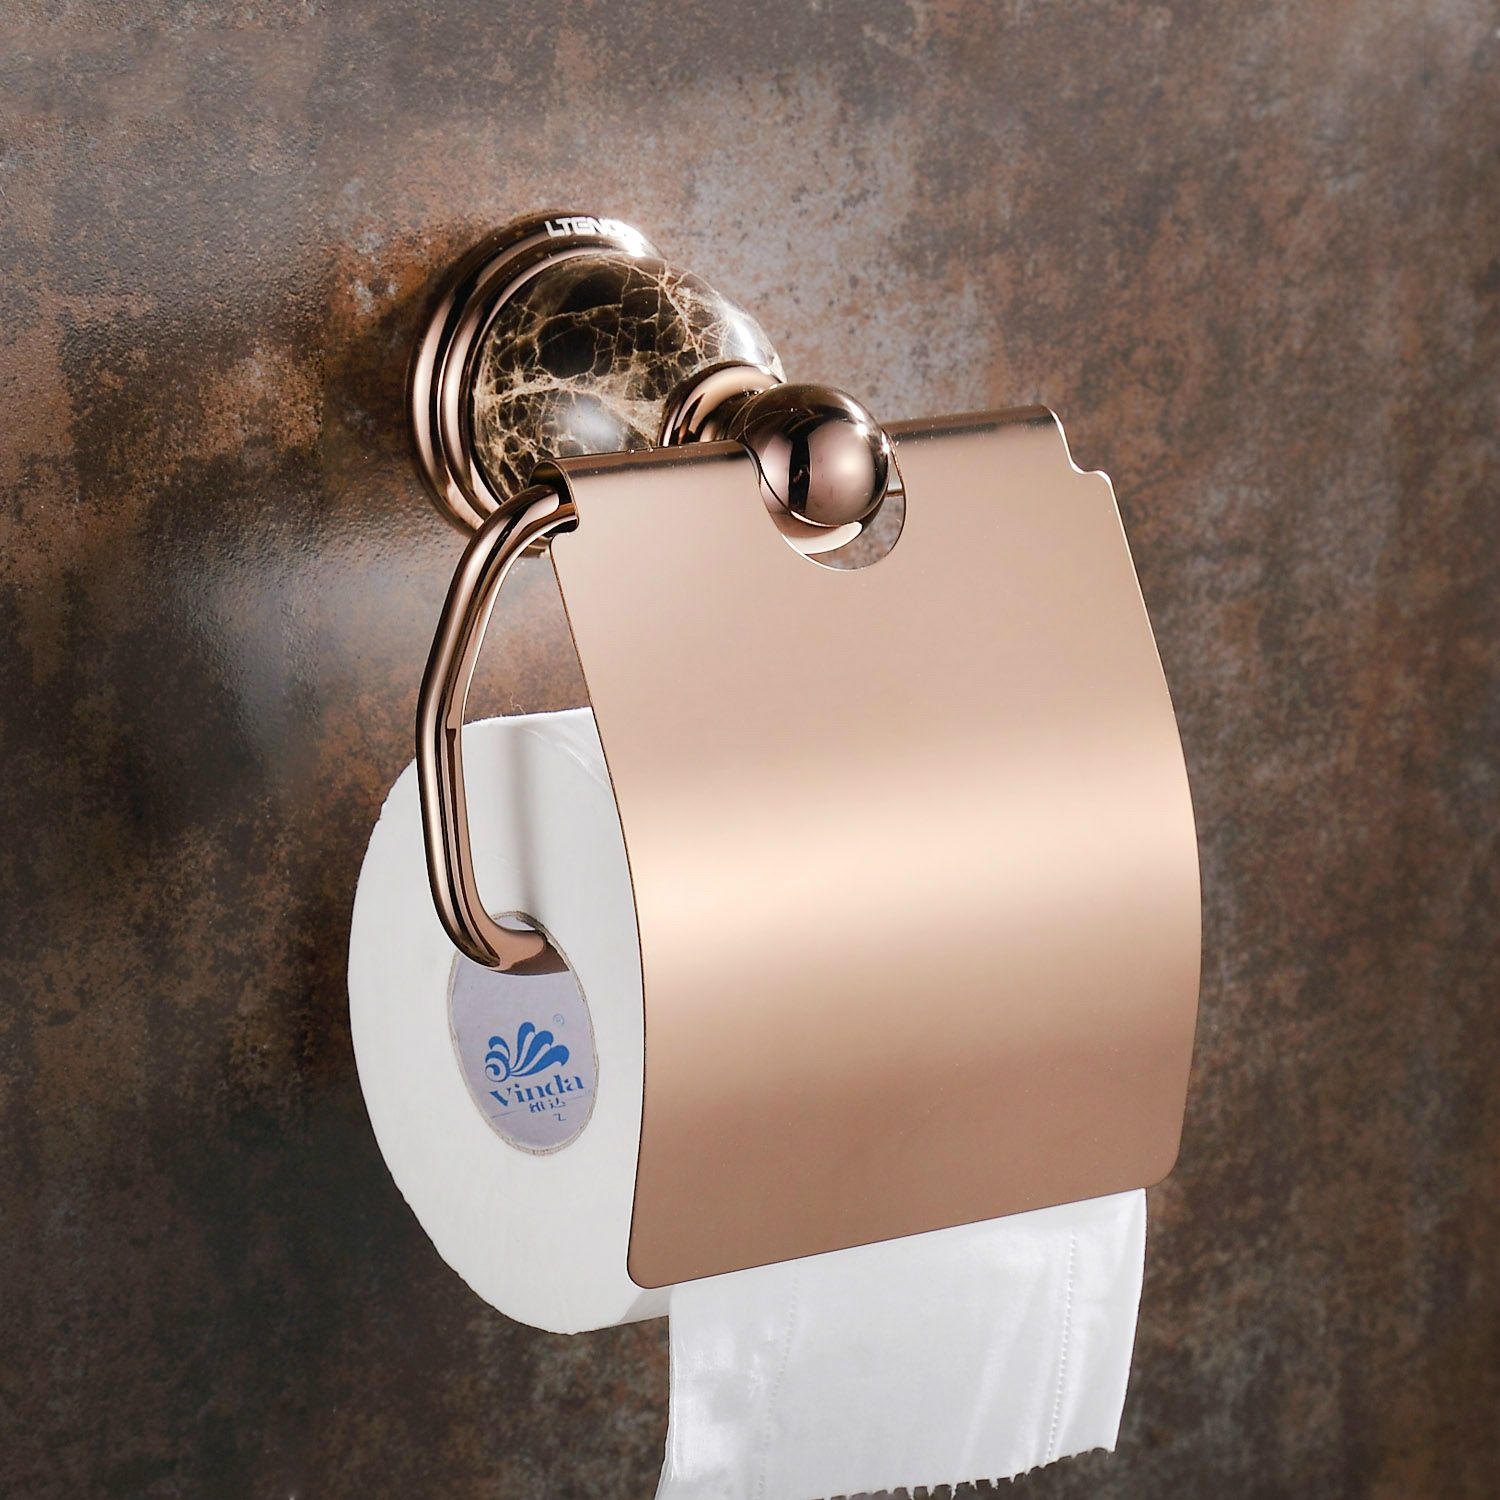 Roll With It Toilet Paper Holder Remodelista Toilet Paper Holder Toilet Roll Holder Diy Toilet